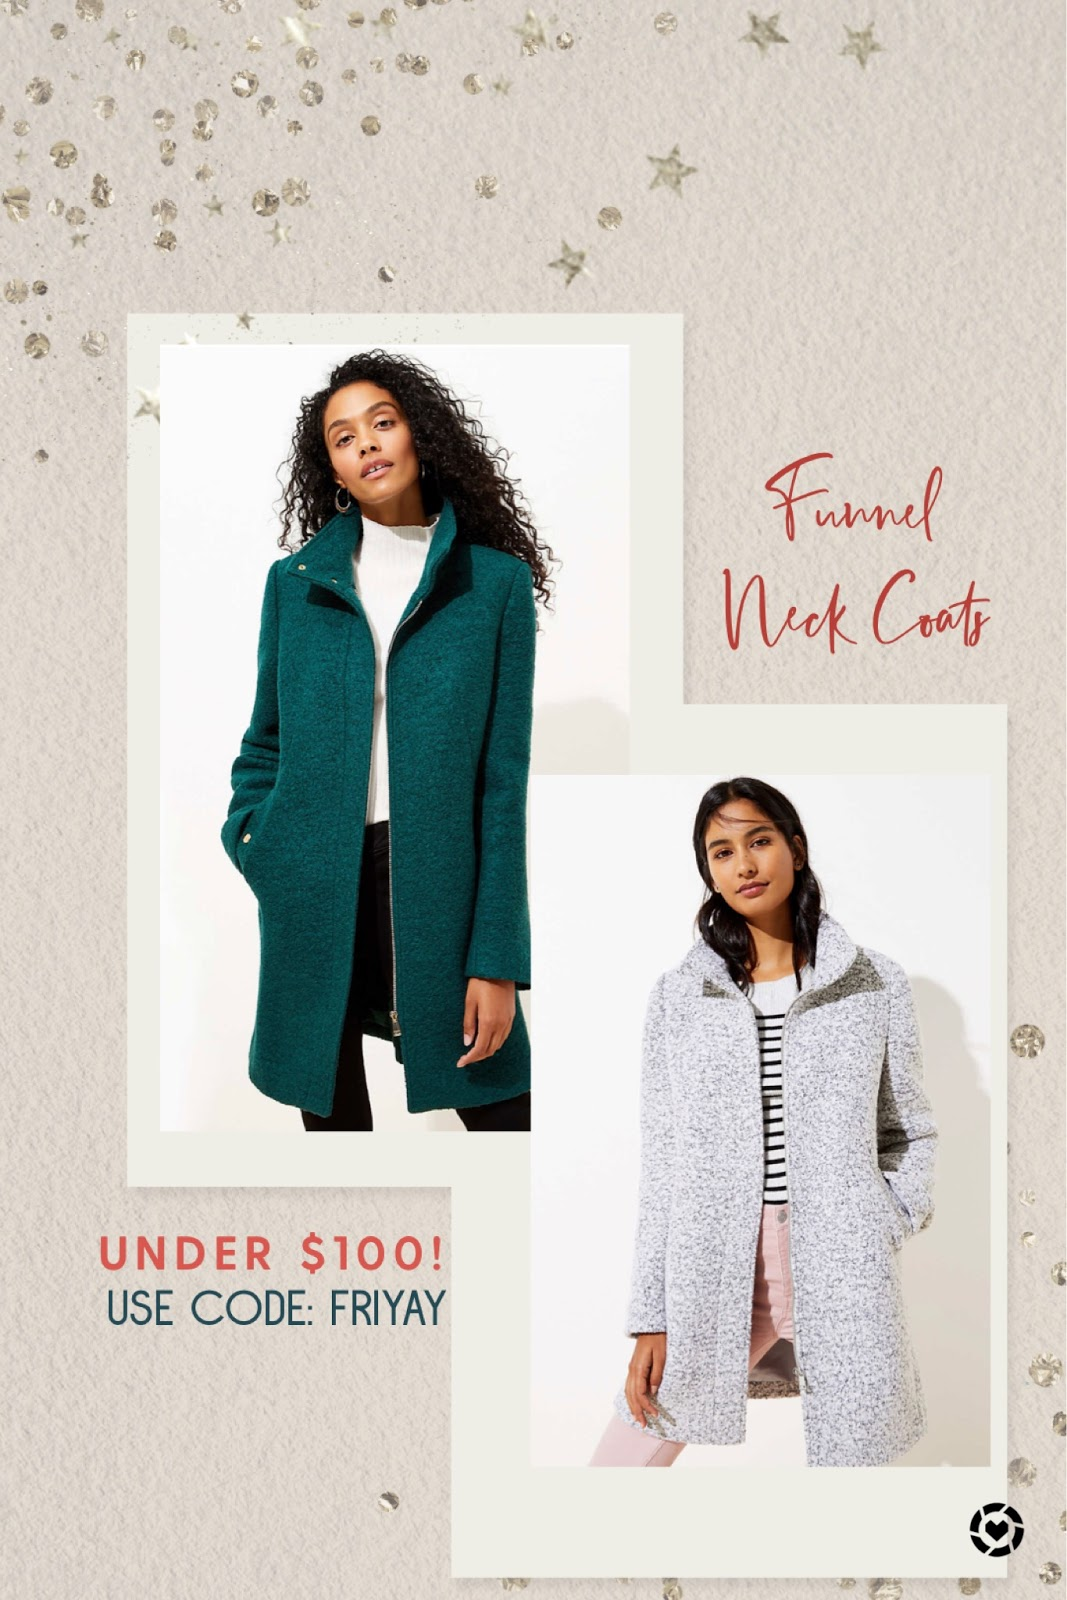 Black Friday Sales and Cyber Monday Deals 2019 | Funnel Neck Coats at LOFT Cyber Monday Deals 2019